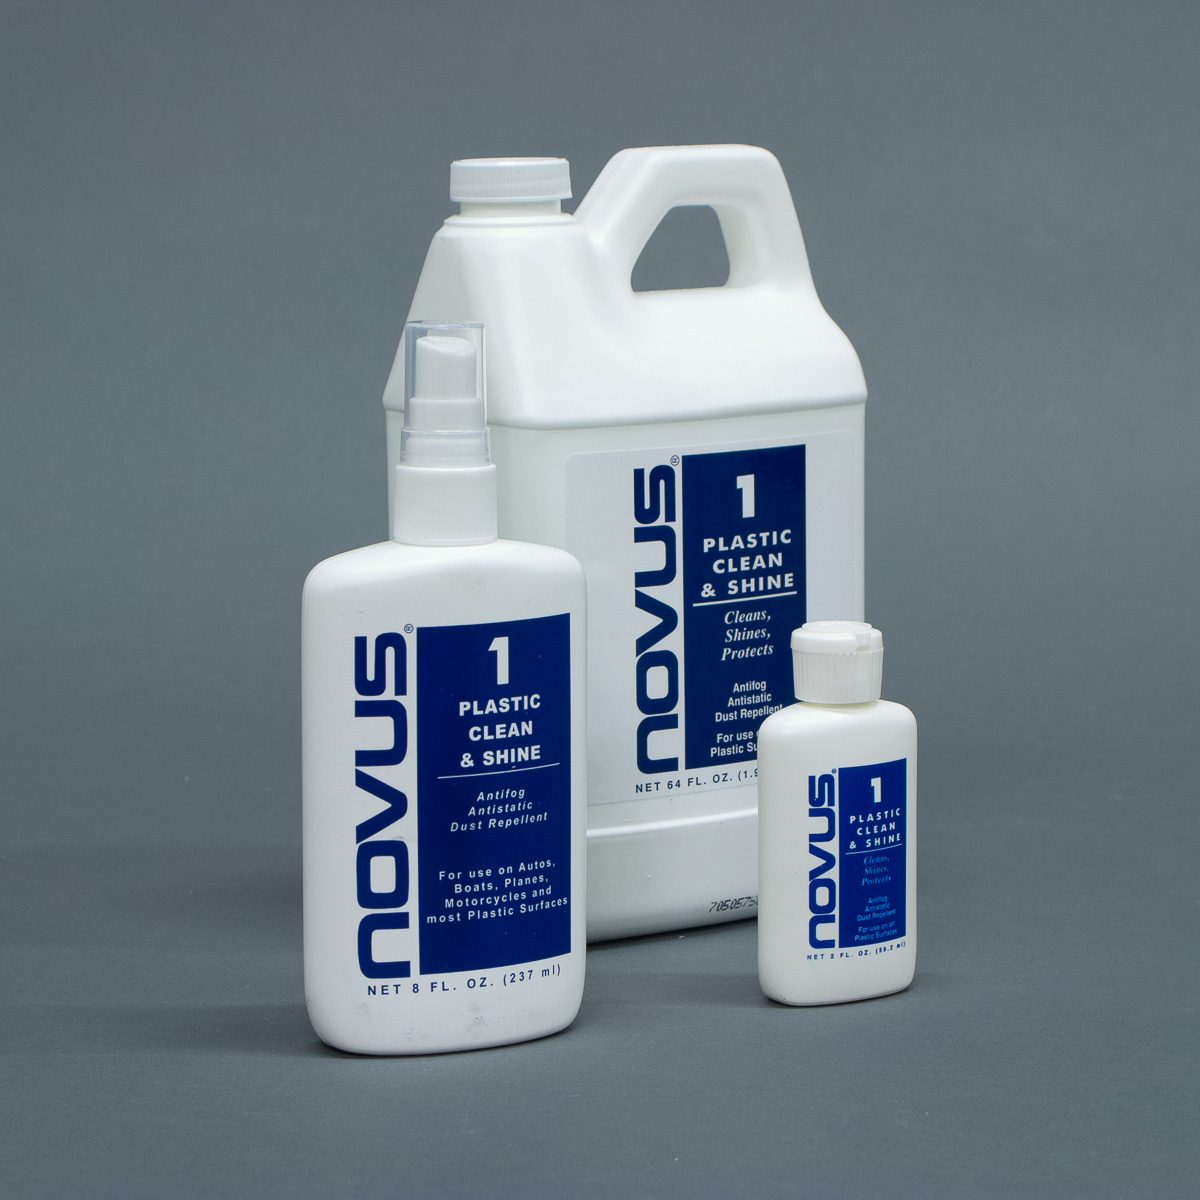 Novus Plastic Polish No. 1 Plastic Clean and Shine